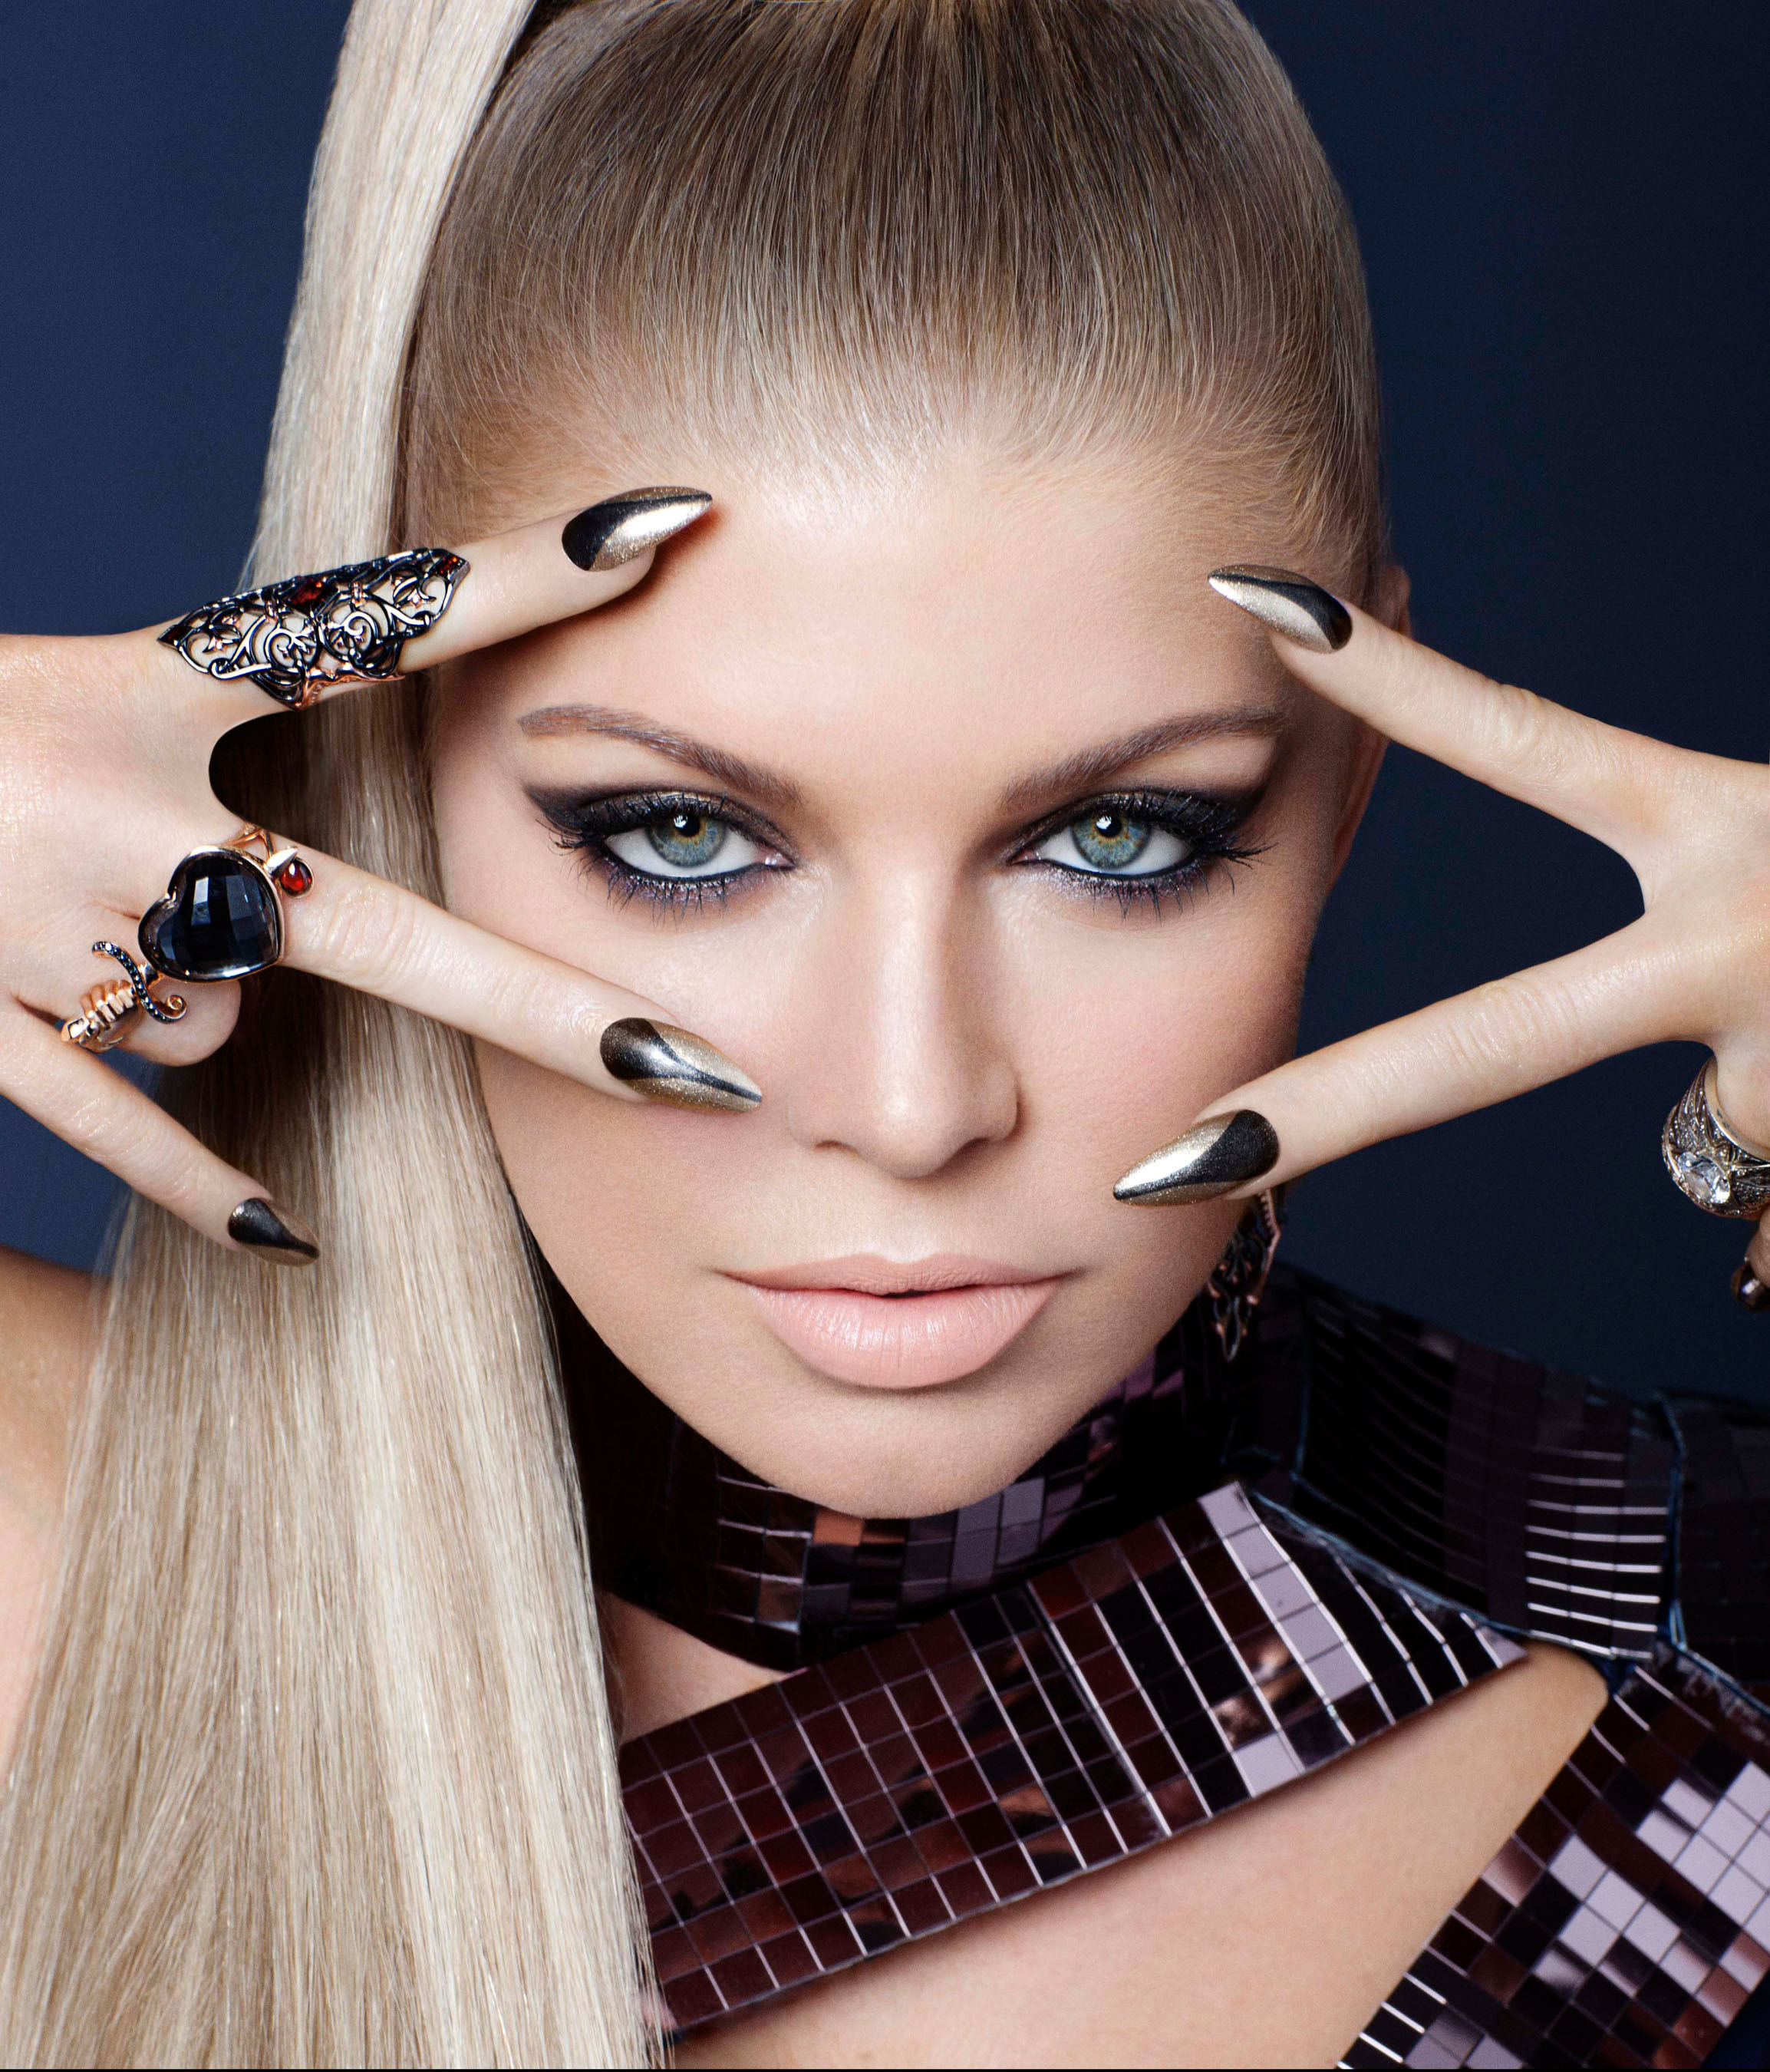 Perfect Pinks And Pouts: Fergie For Wet 'n' Wild